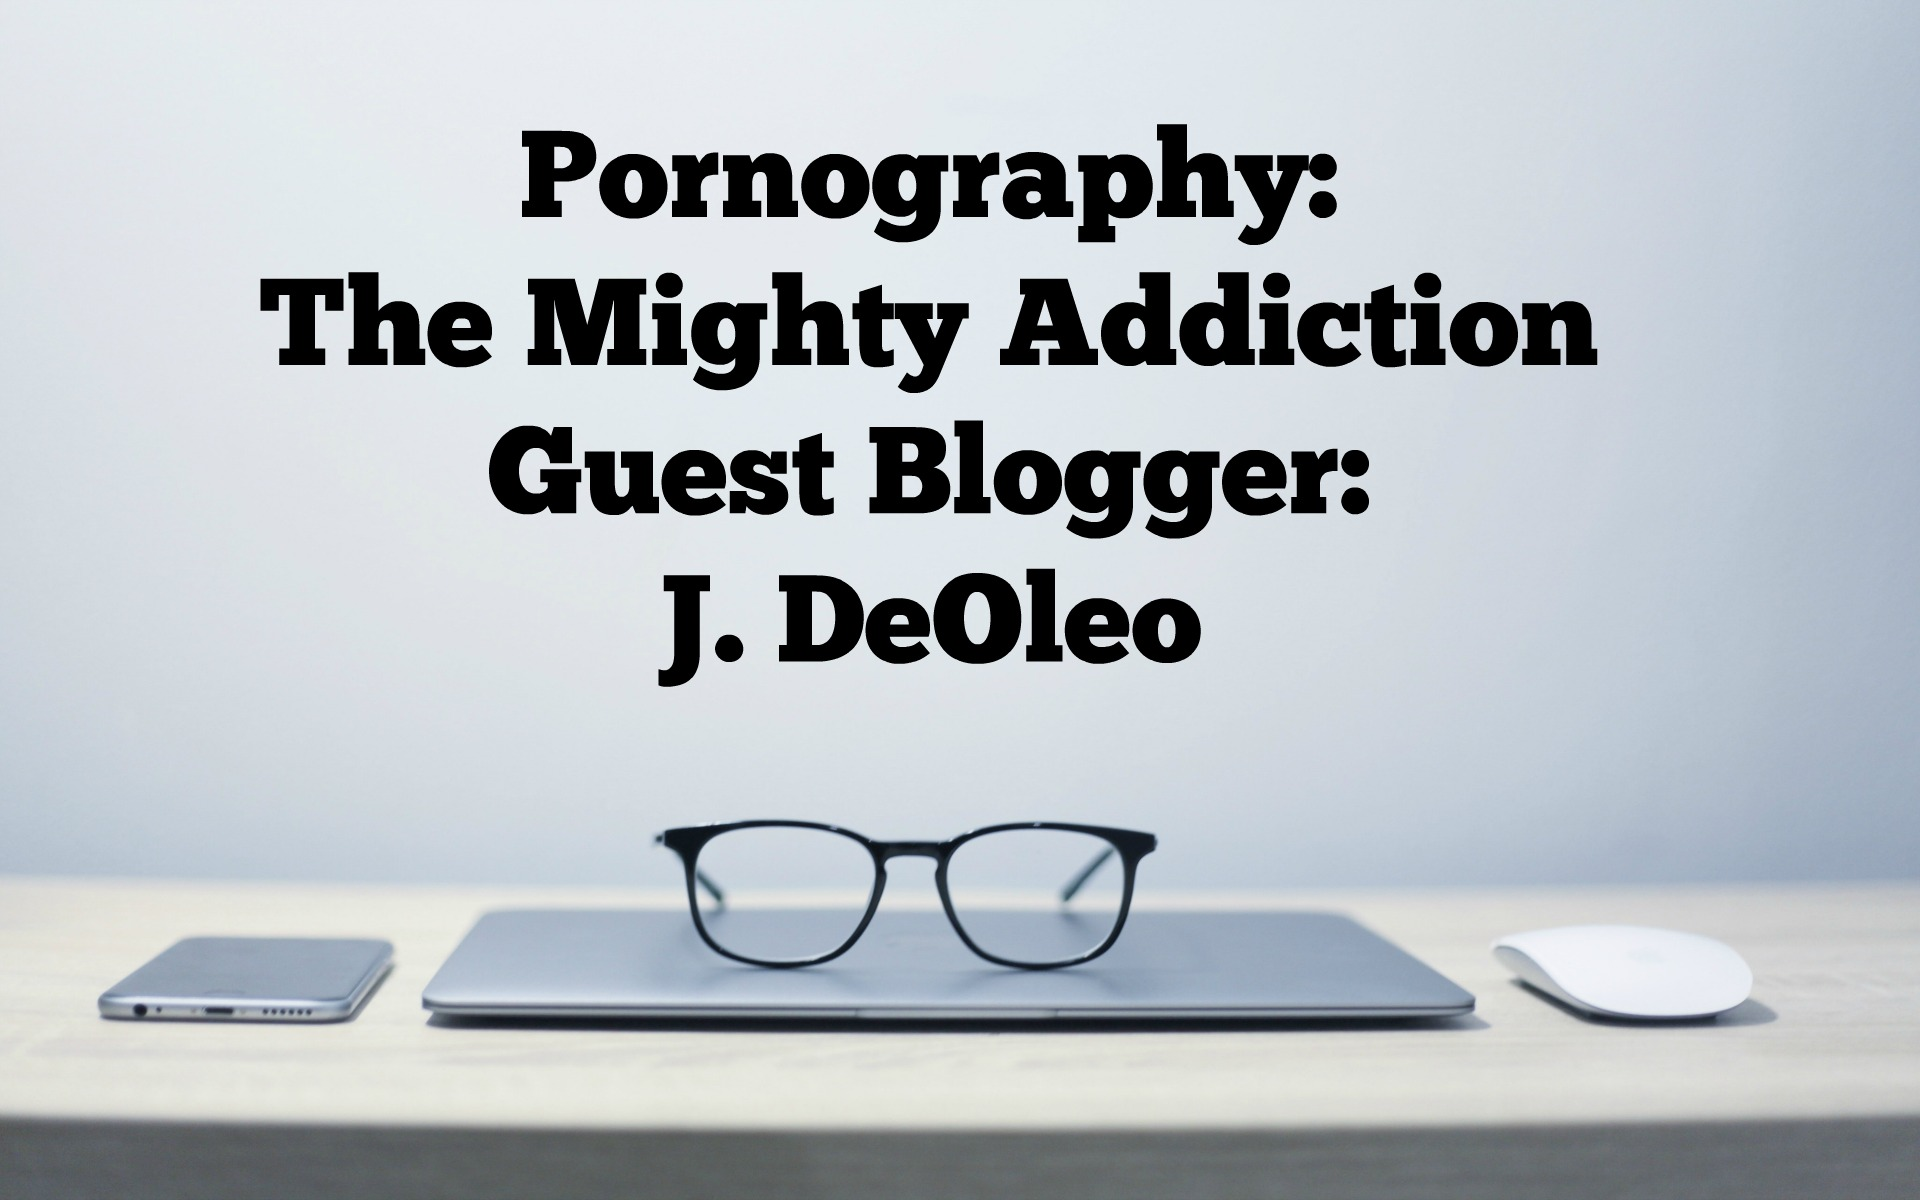 Pornography: The Mighty Addiction Guest Blogger: J. DeOleo